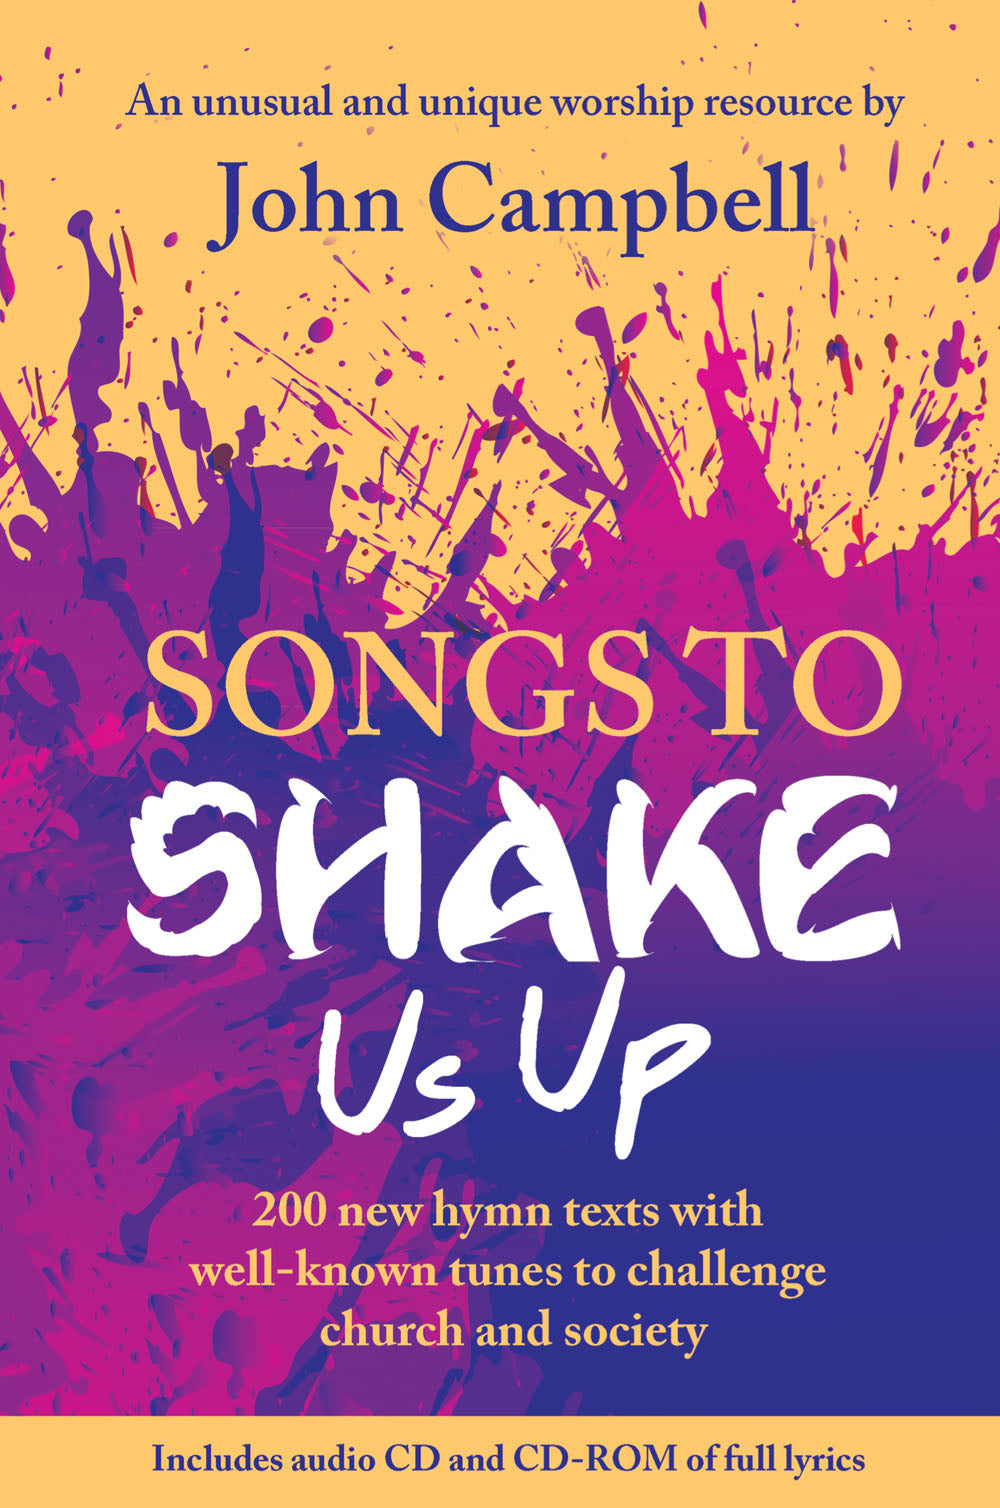 Songs To Shake Us Up - With Audio Cd & Cd Rom For Lyrics   Songs To Shake Us Up - With Audio Cd & Cd Rom For Lyrics